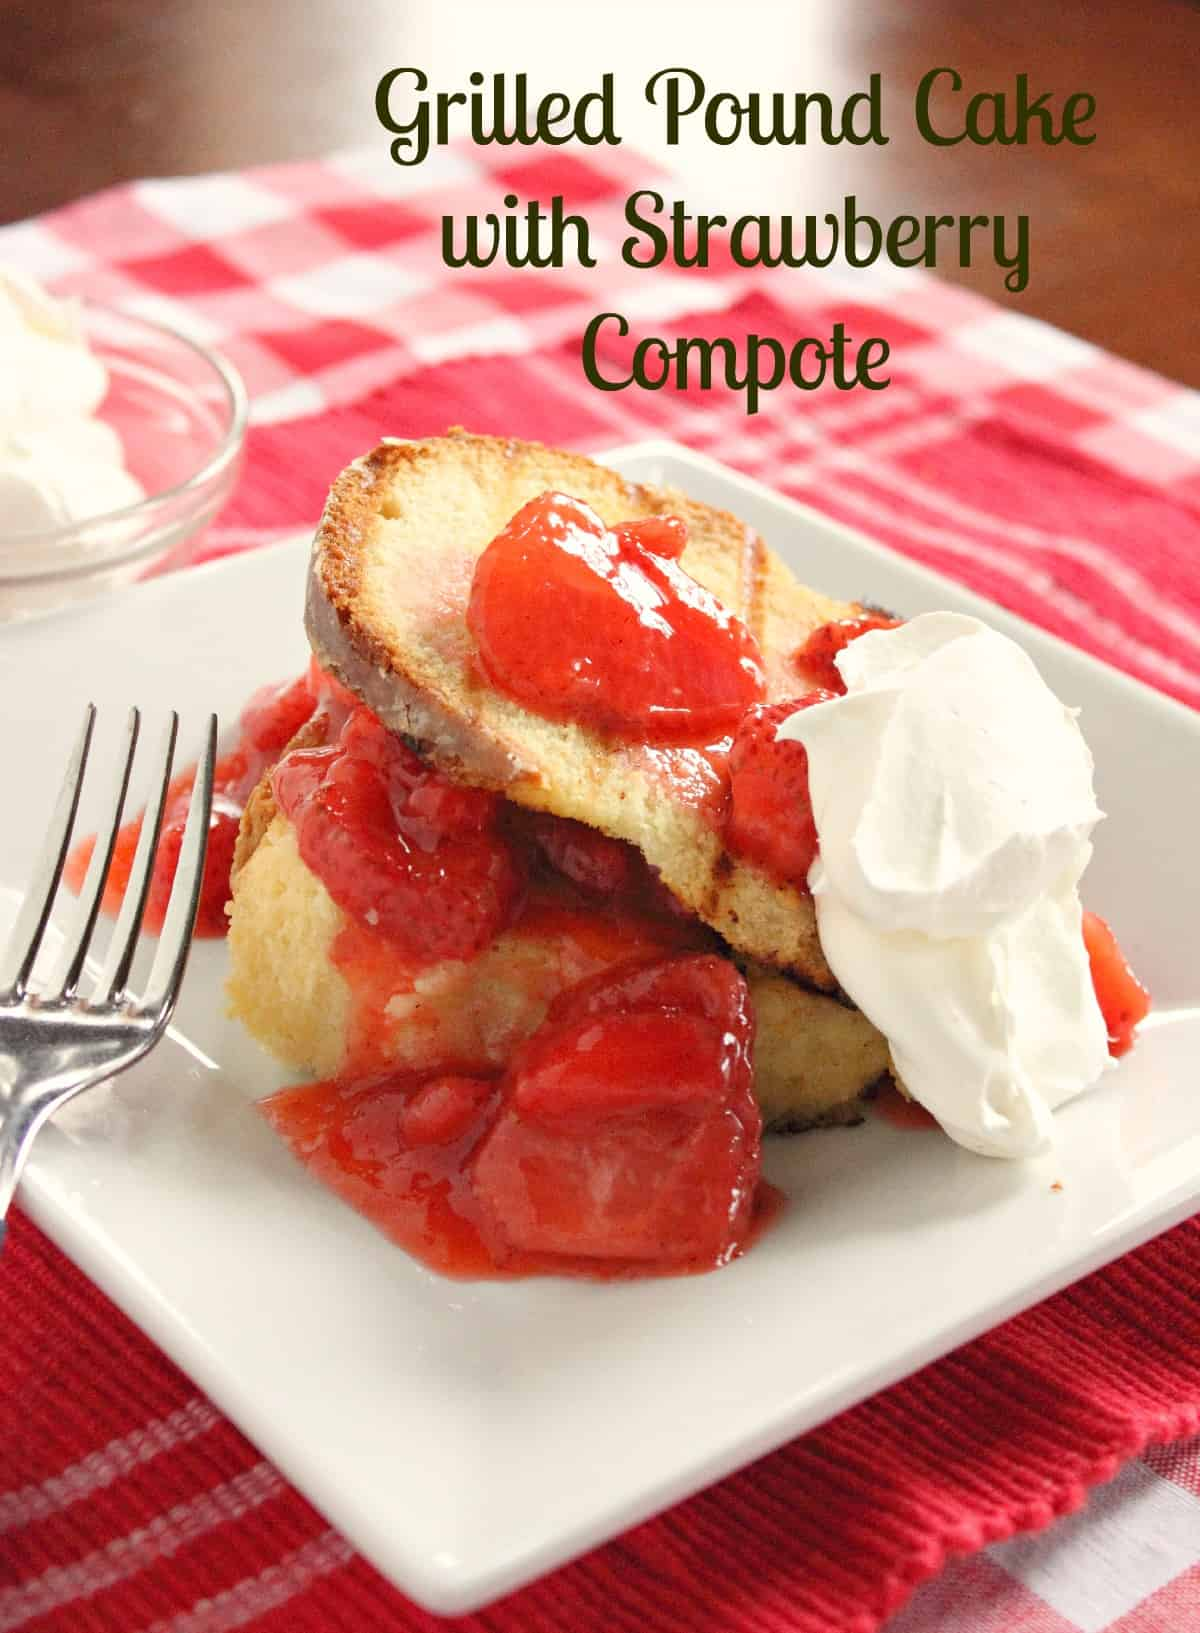 Grilled Pound Cake with Strawberry Compote